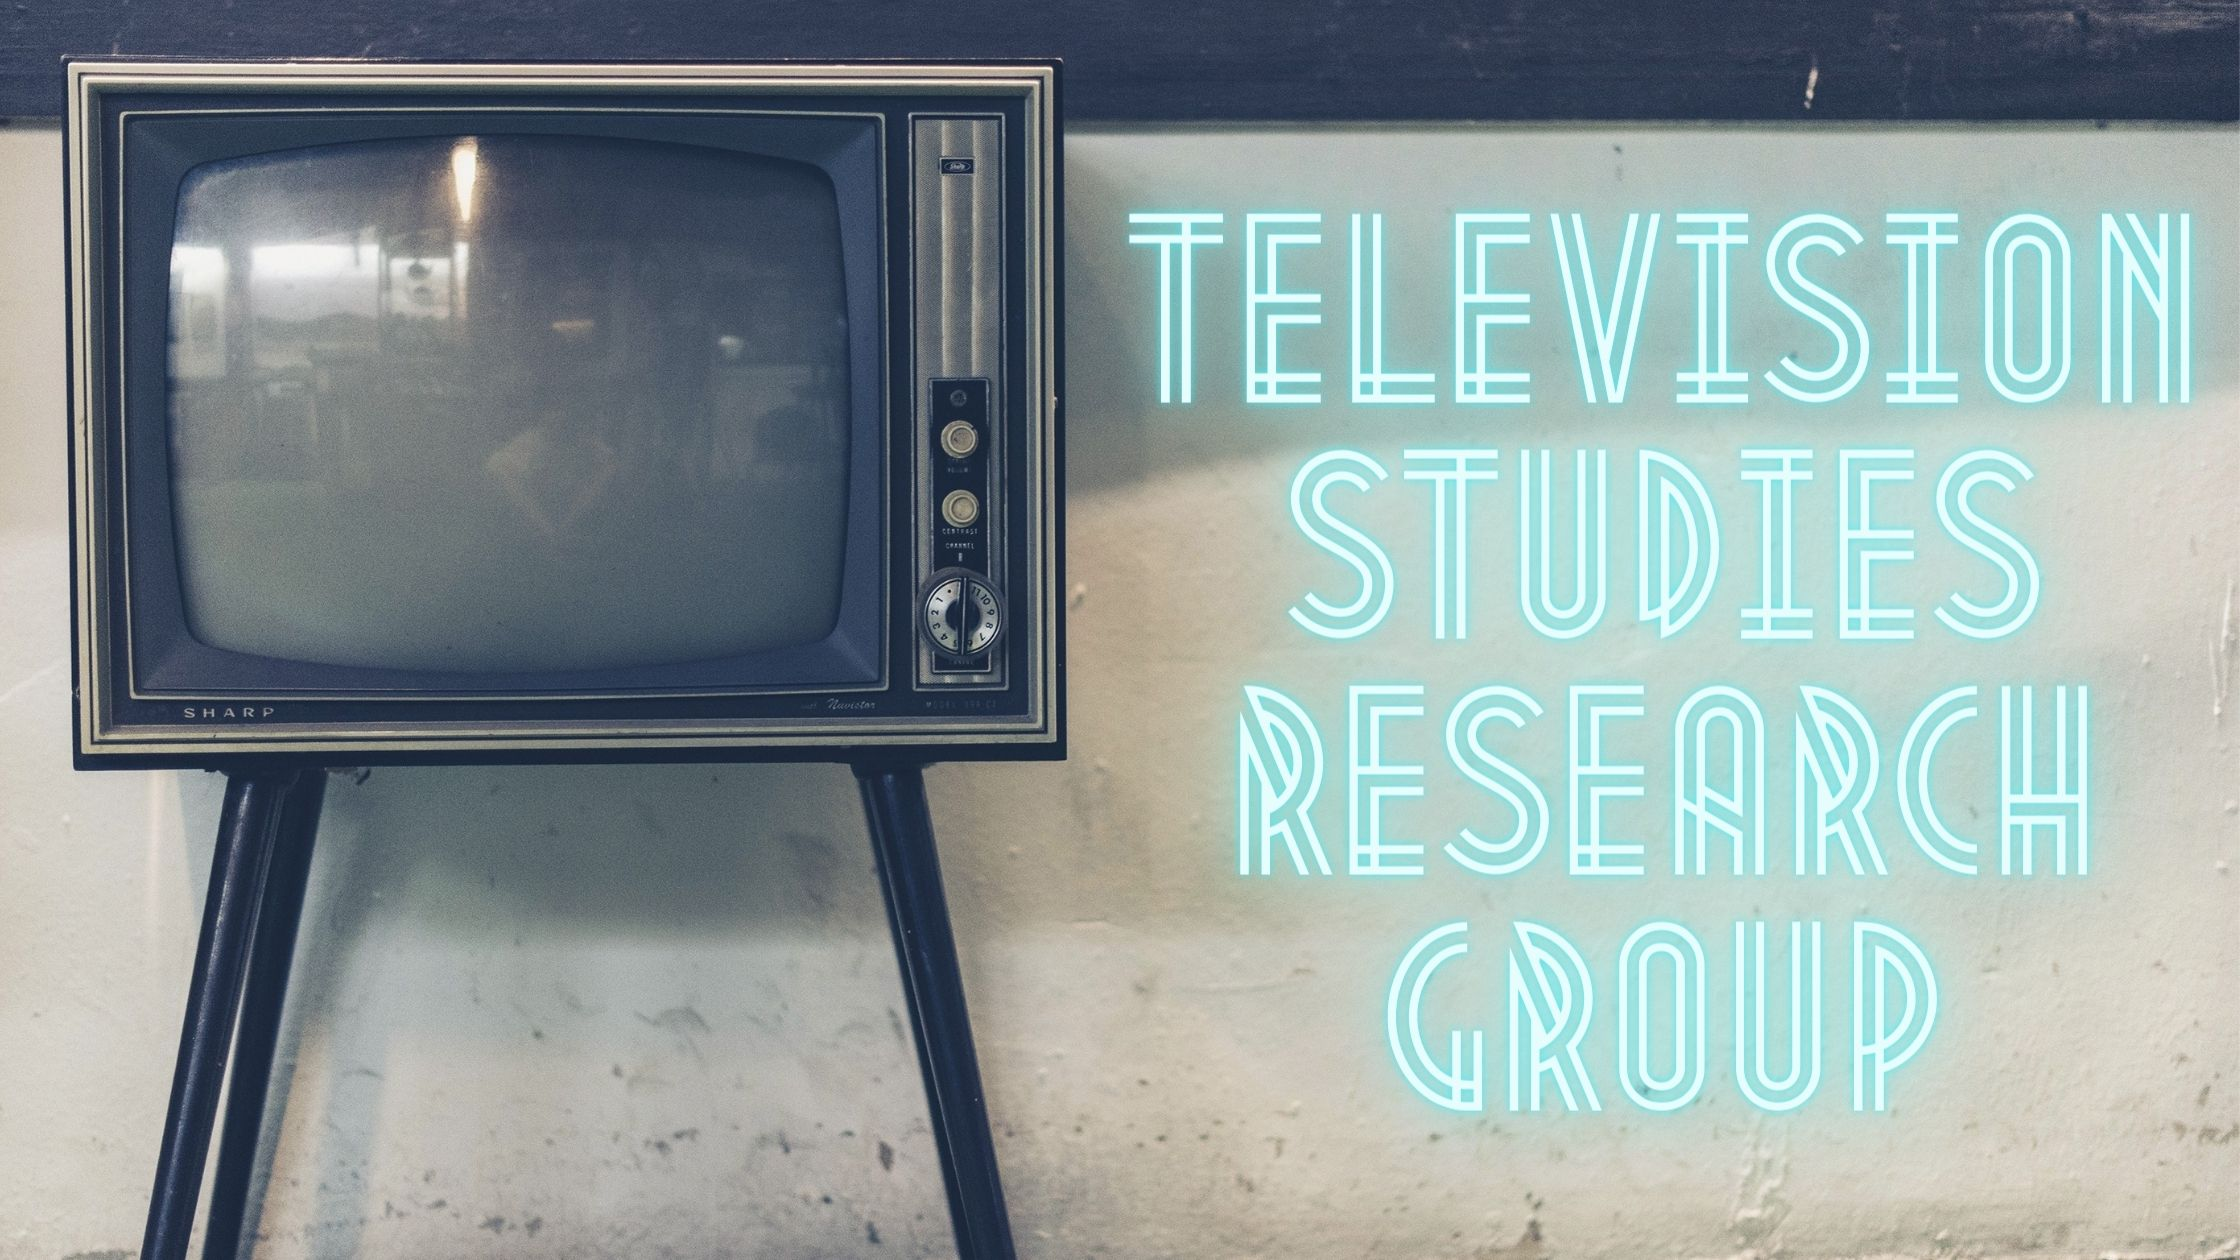 TV research group banner image